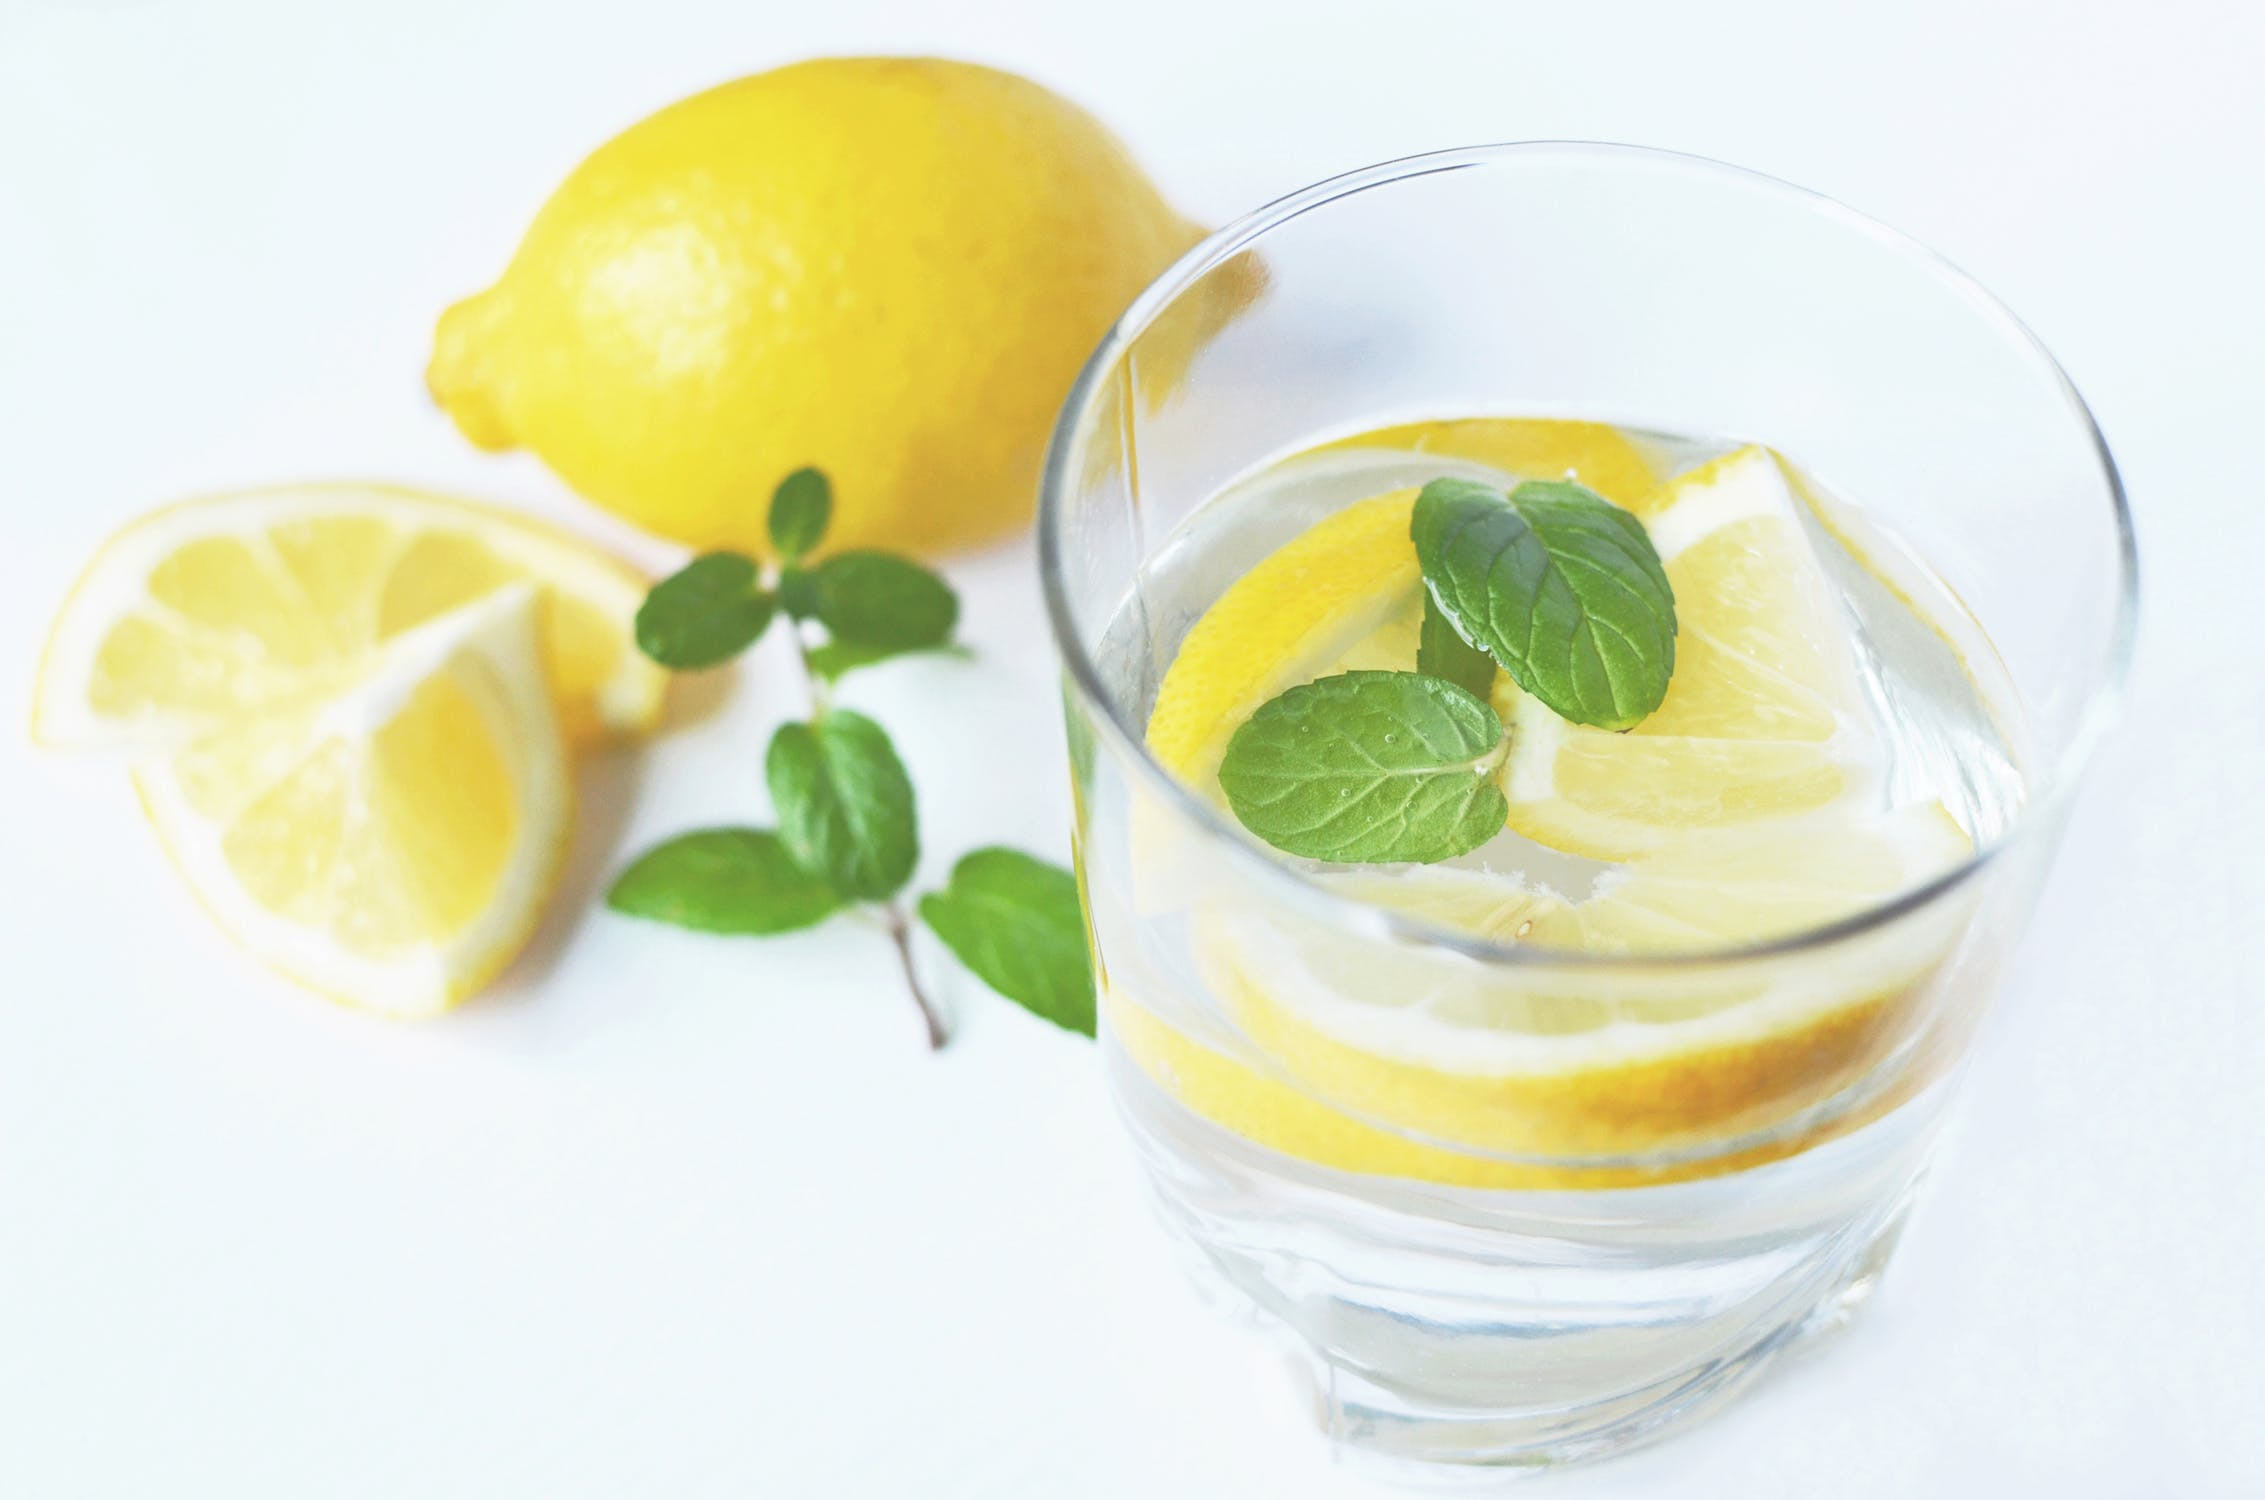 drink lemon water - The easiest and most effective thing you can do is drink tons of water. I start with an ice cold glass of lemon water in the morning then end my day with the same. I also continue to drink tons of water throughout the day. I usually just add lemon, but feel free to add in mint, cucumber, or any other fruits you desire!Why it Works: The water provides hydration which allows your body to flush out any unwanted toxins. The lemons give you vitamin C which help boost your immune system and fight illness. They also aide in energy production AND detoxification!!